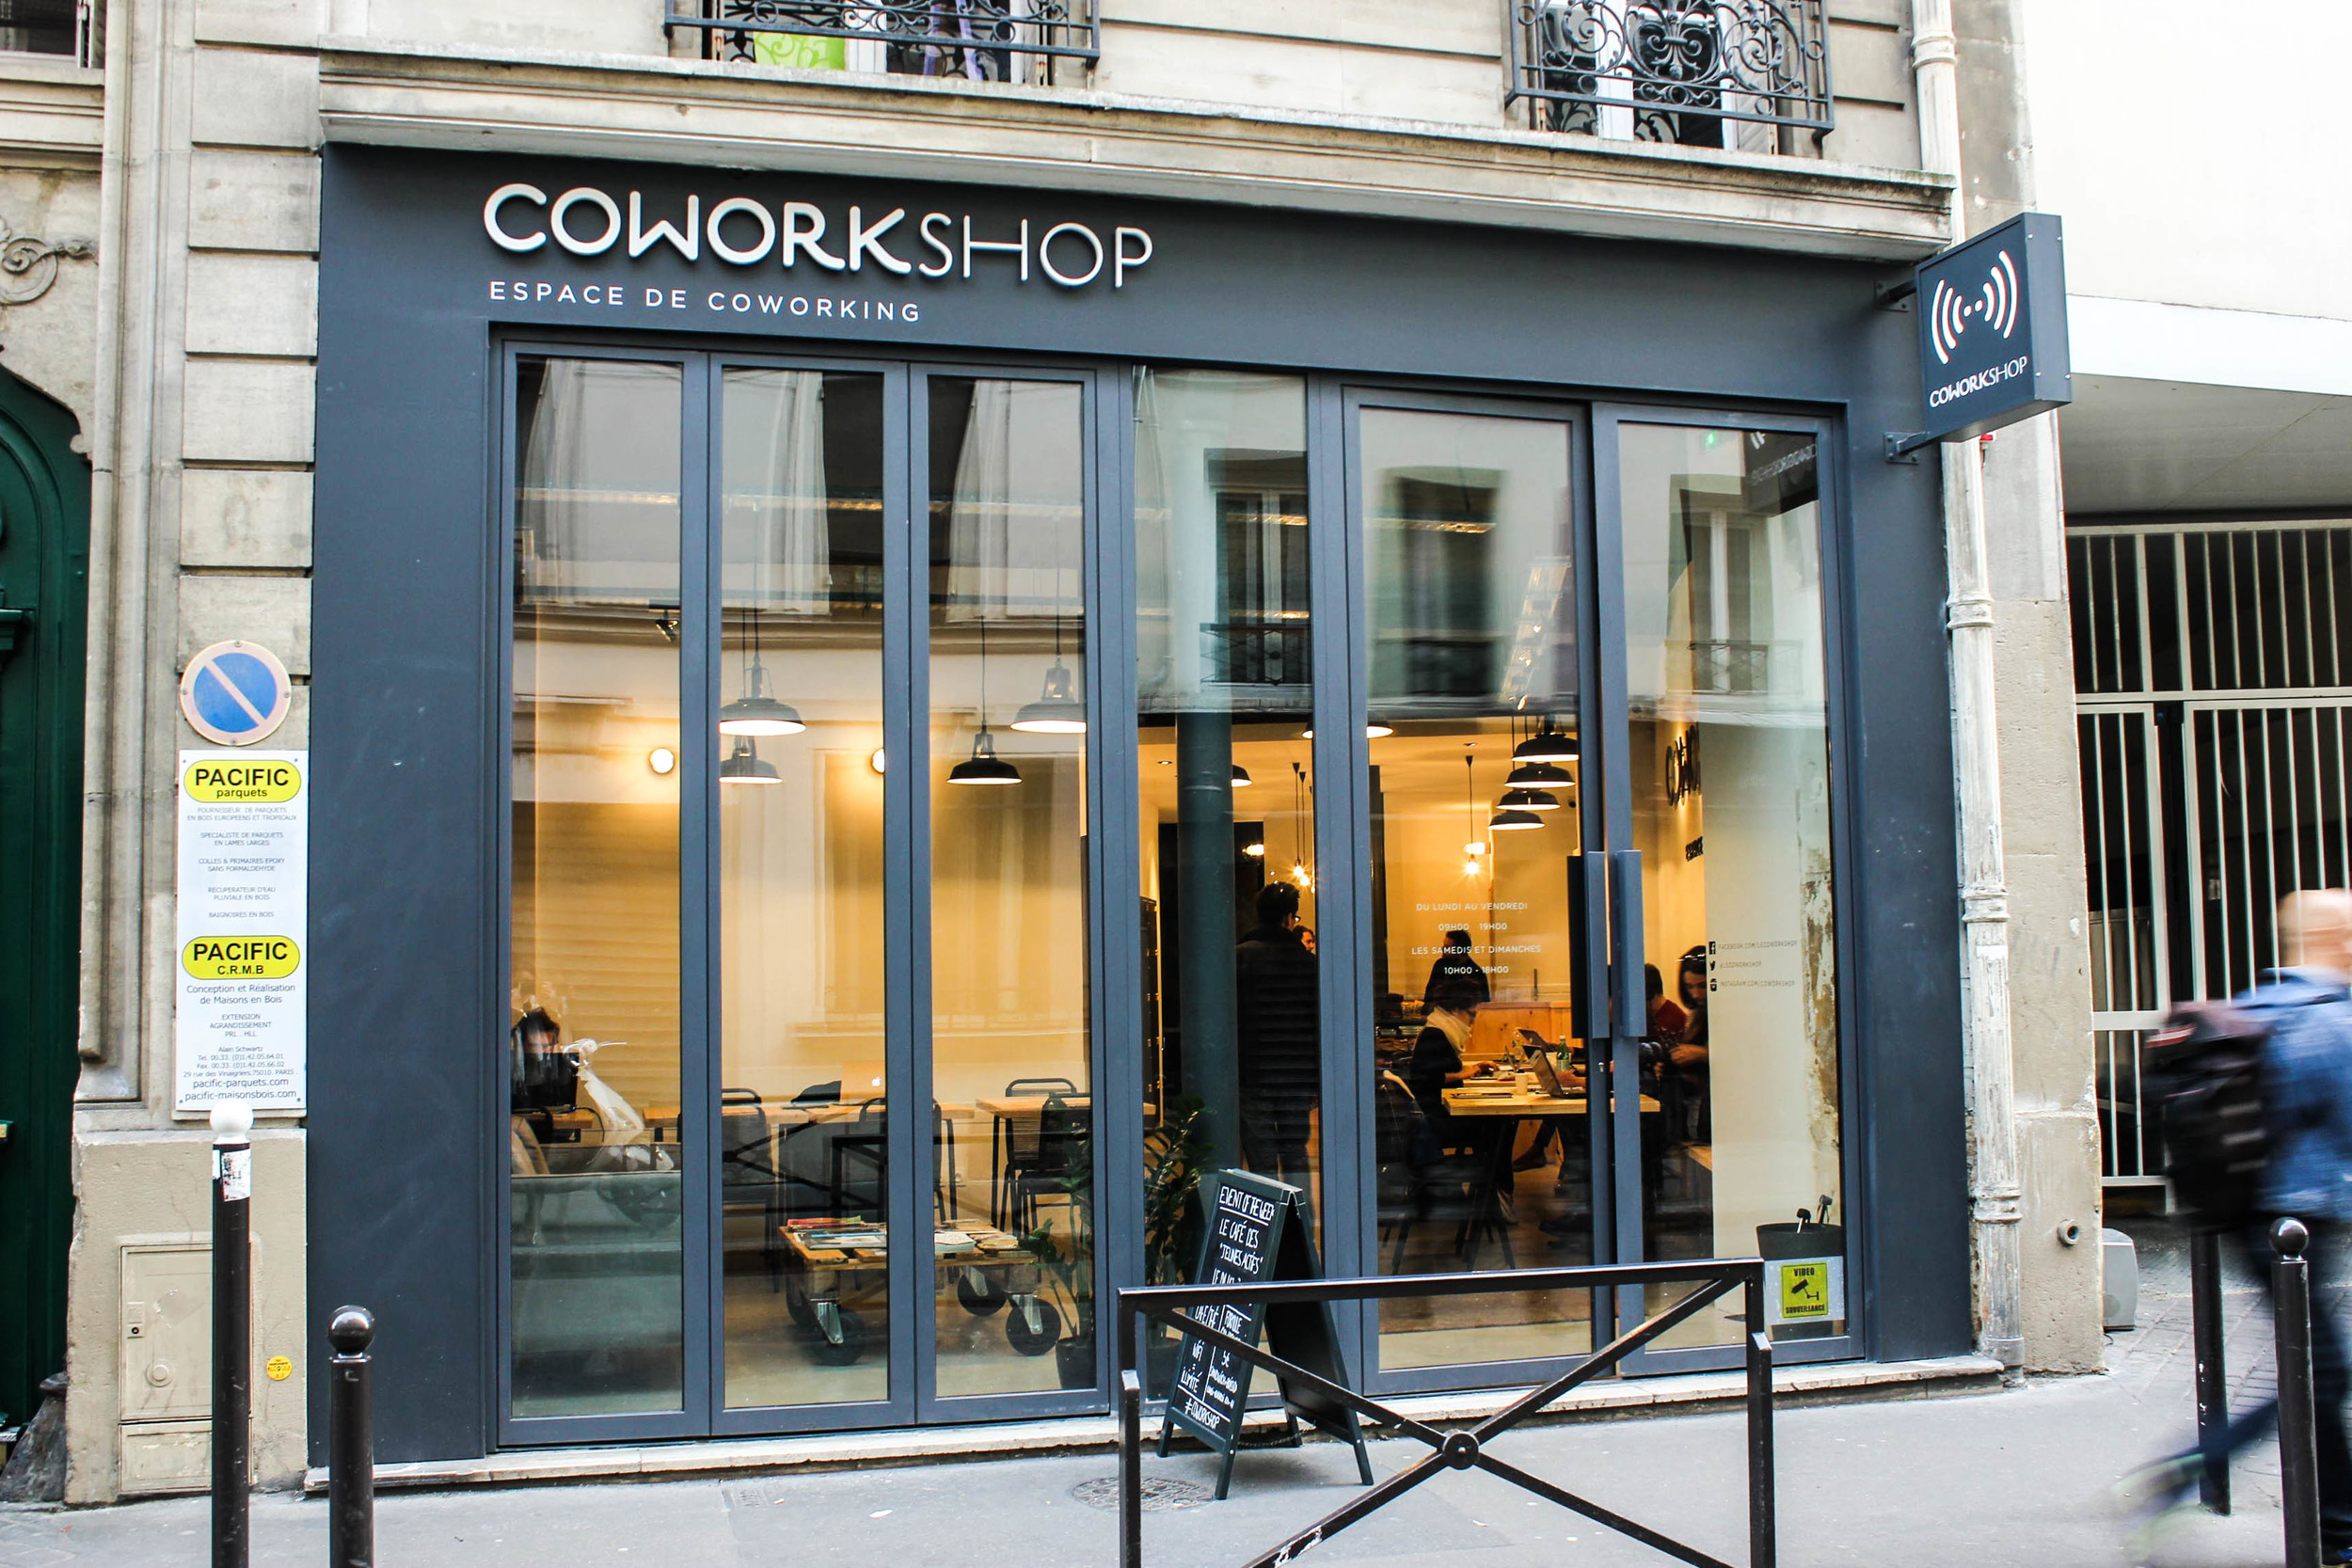 coworking cafe :)